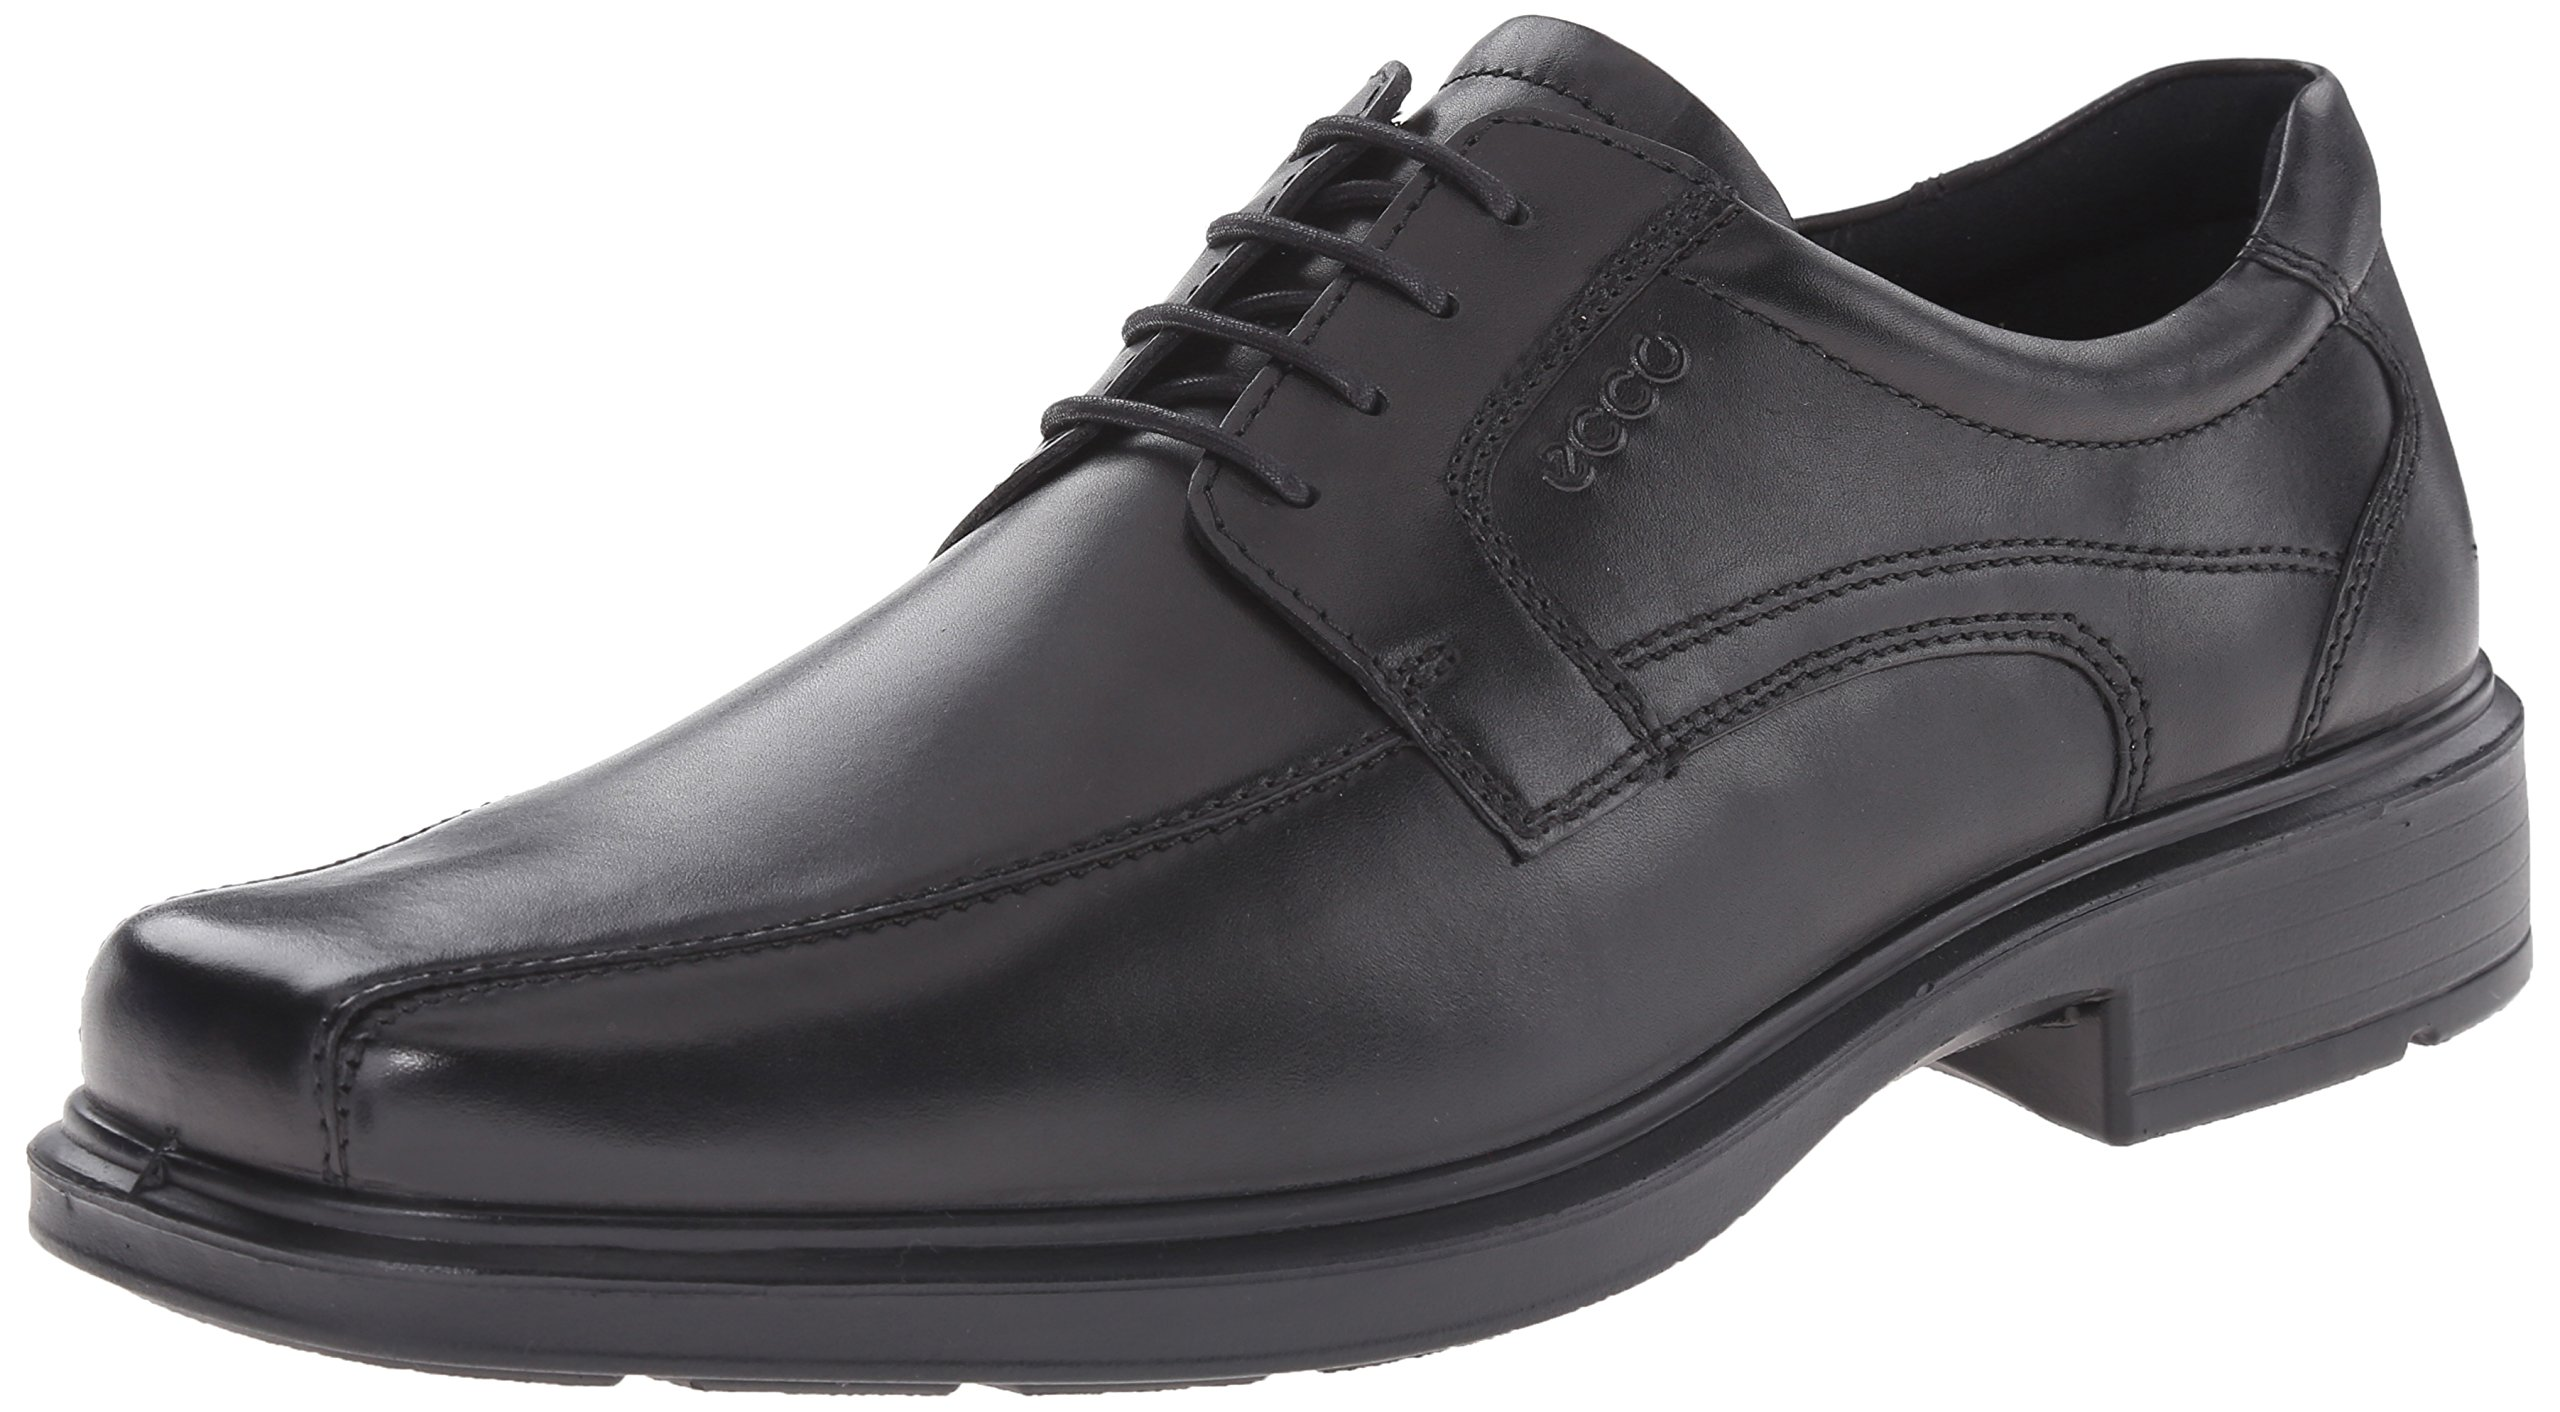 ECCO Men's Helsinki Oxford,Black,50 EU (US Men's 16-16.5 M)